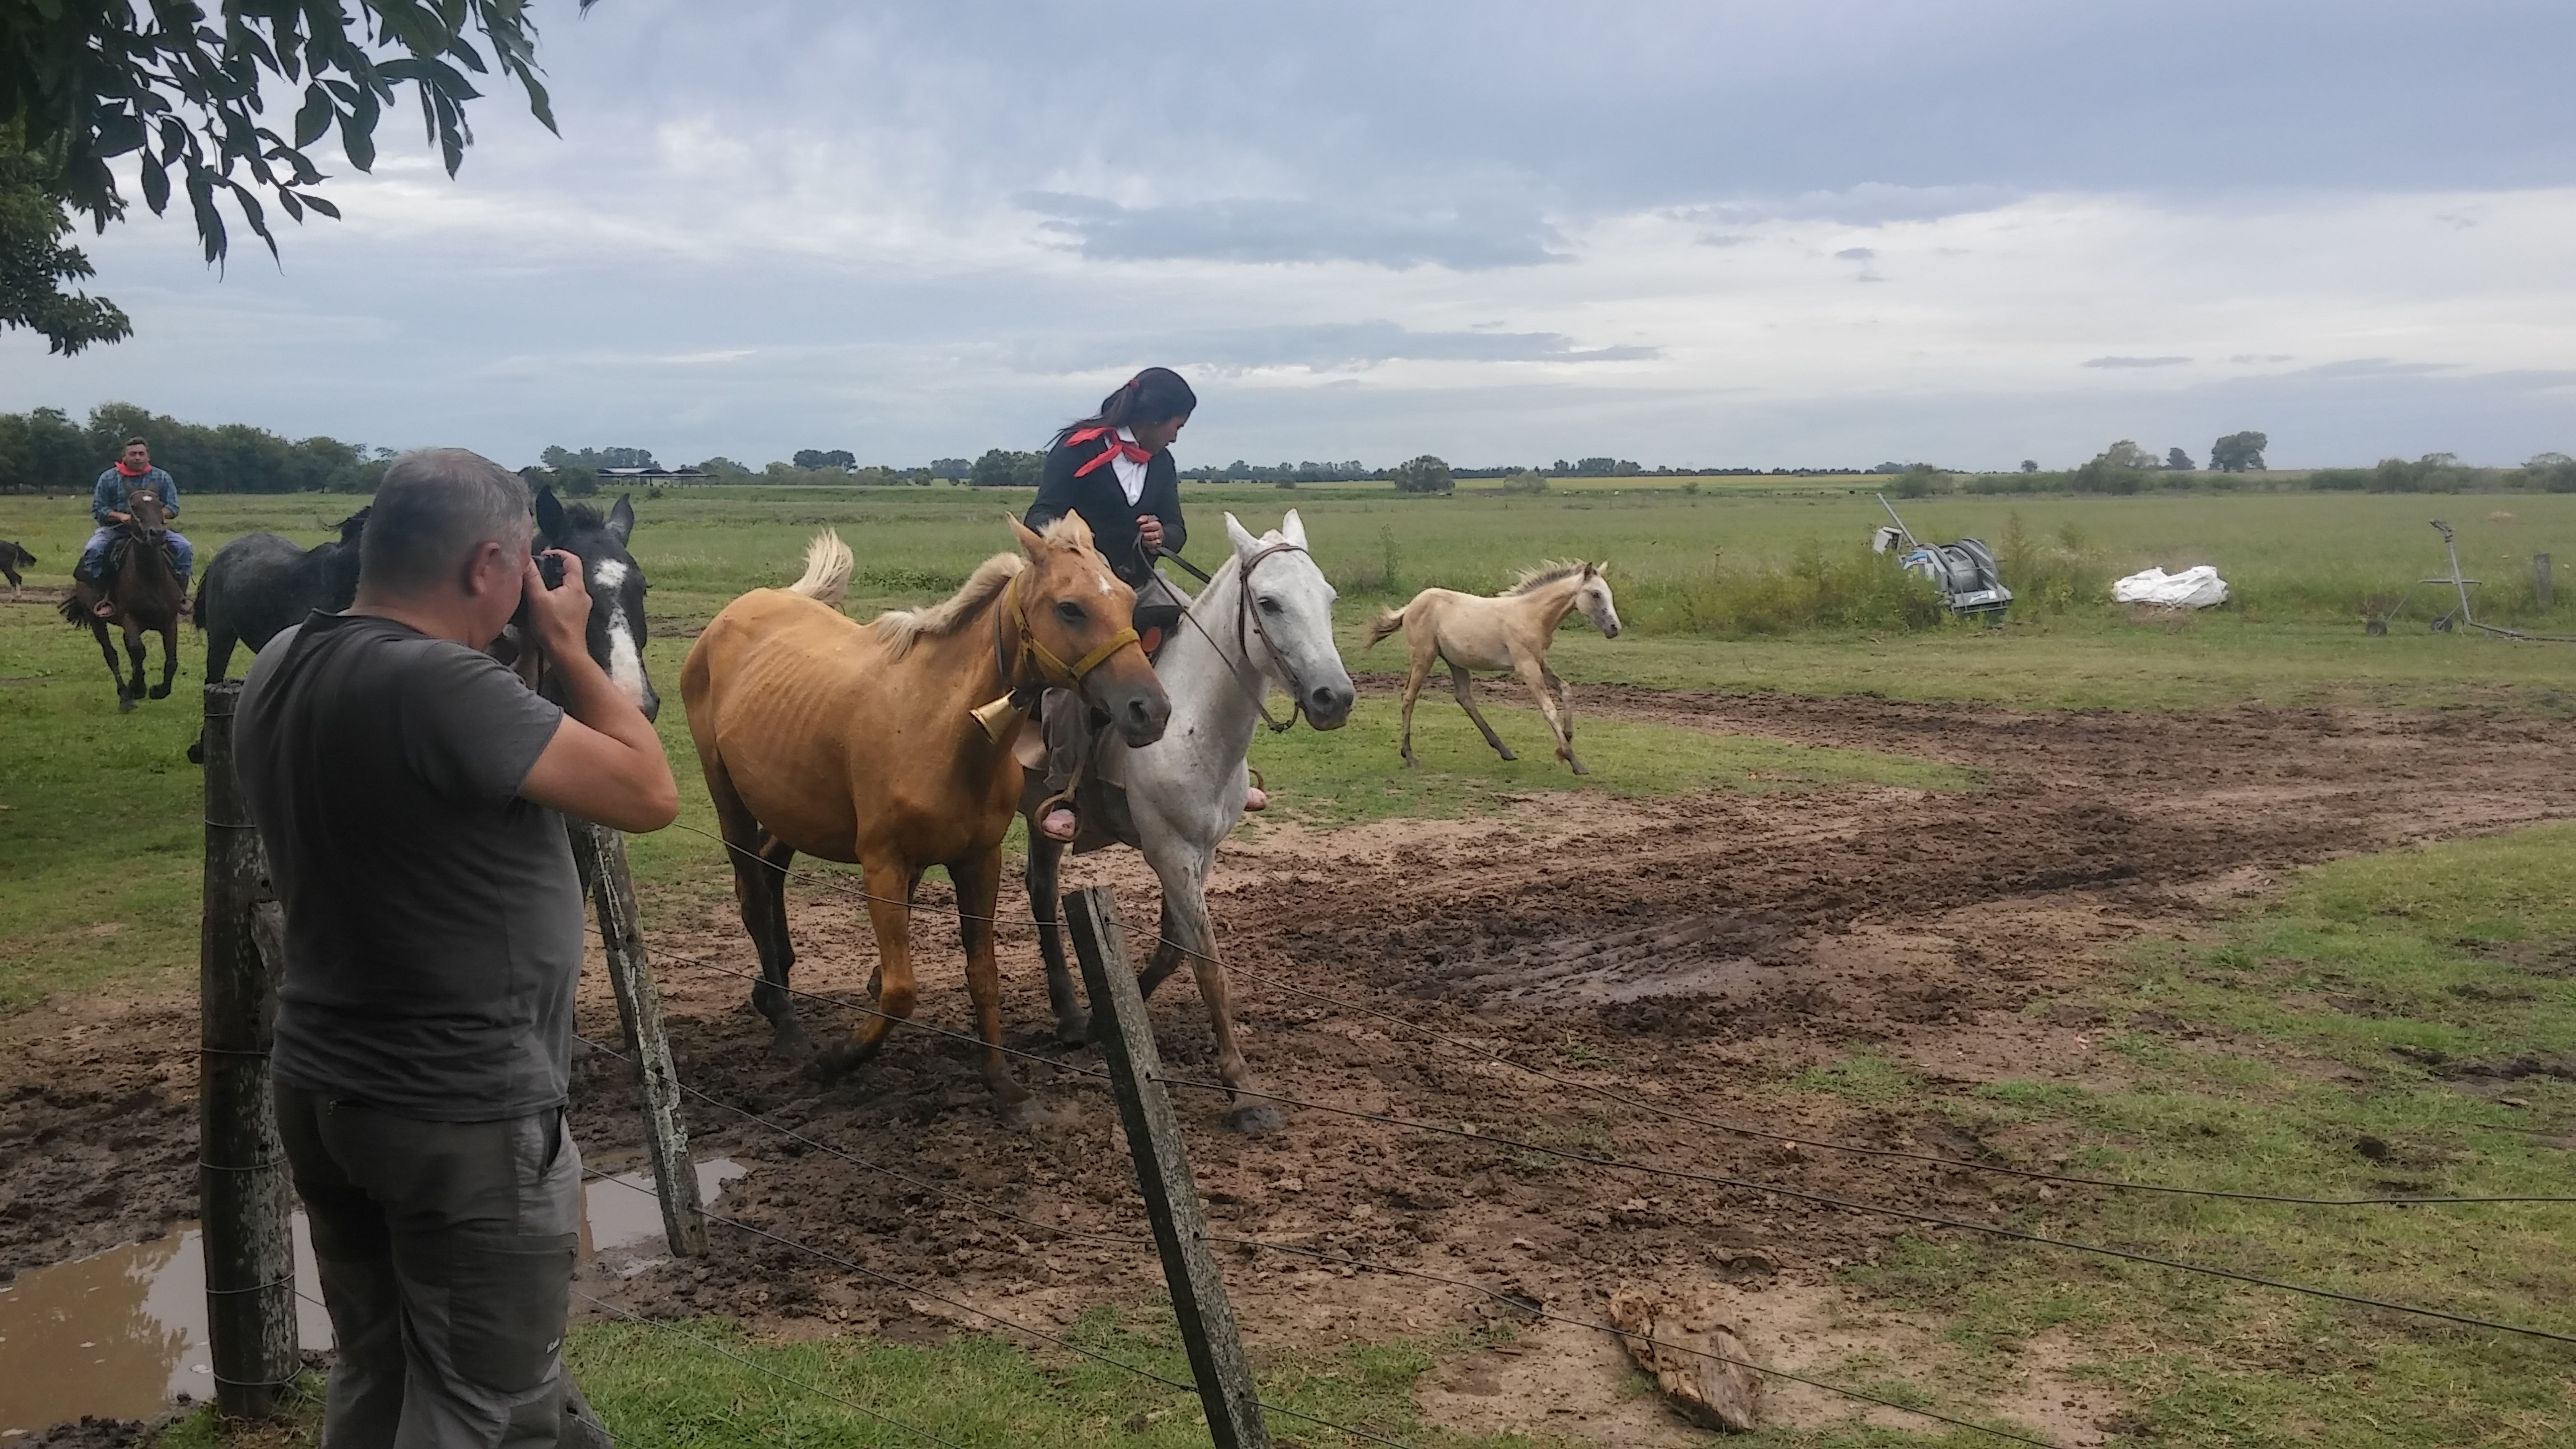 CAPAStudyAbroad_BuenosAires_Spring2016_From_Liz_Hendry_-_Woman_of_an_estancia_winning_a_horse_race.jpg